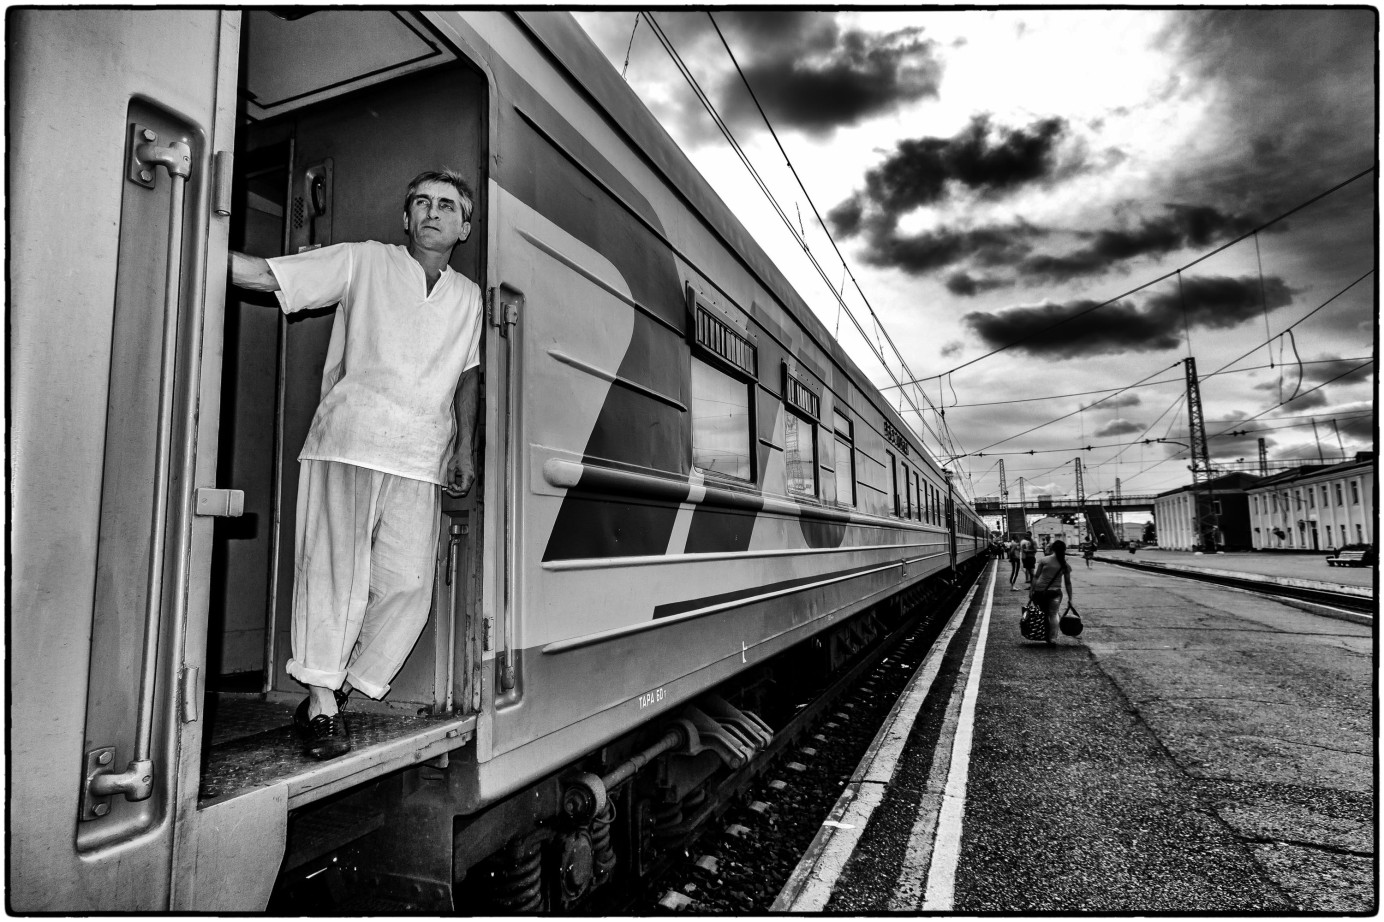 Chef at the Trans-Siberian rail wail, between Moscow and Khabarovsk. CC 2.0 photo by Leidolv Magelssen.